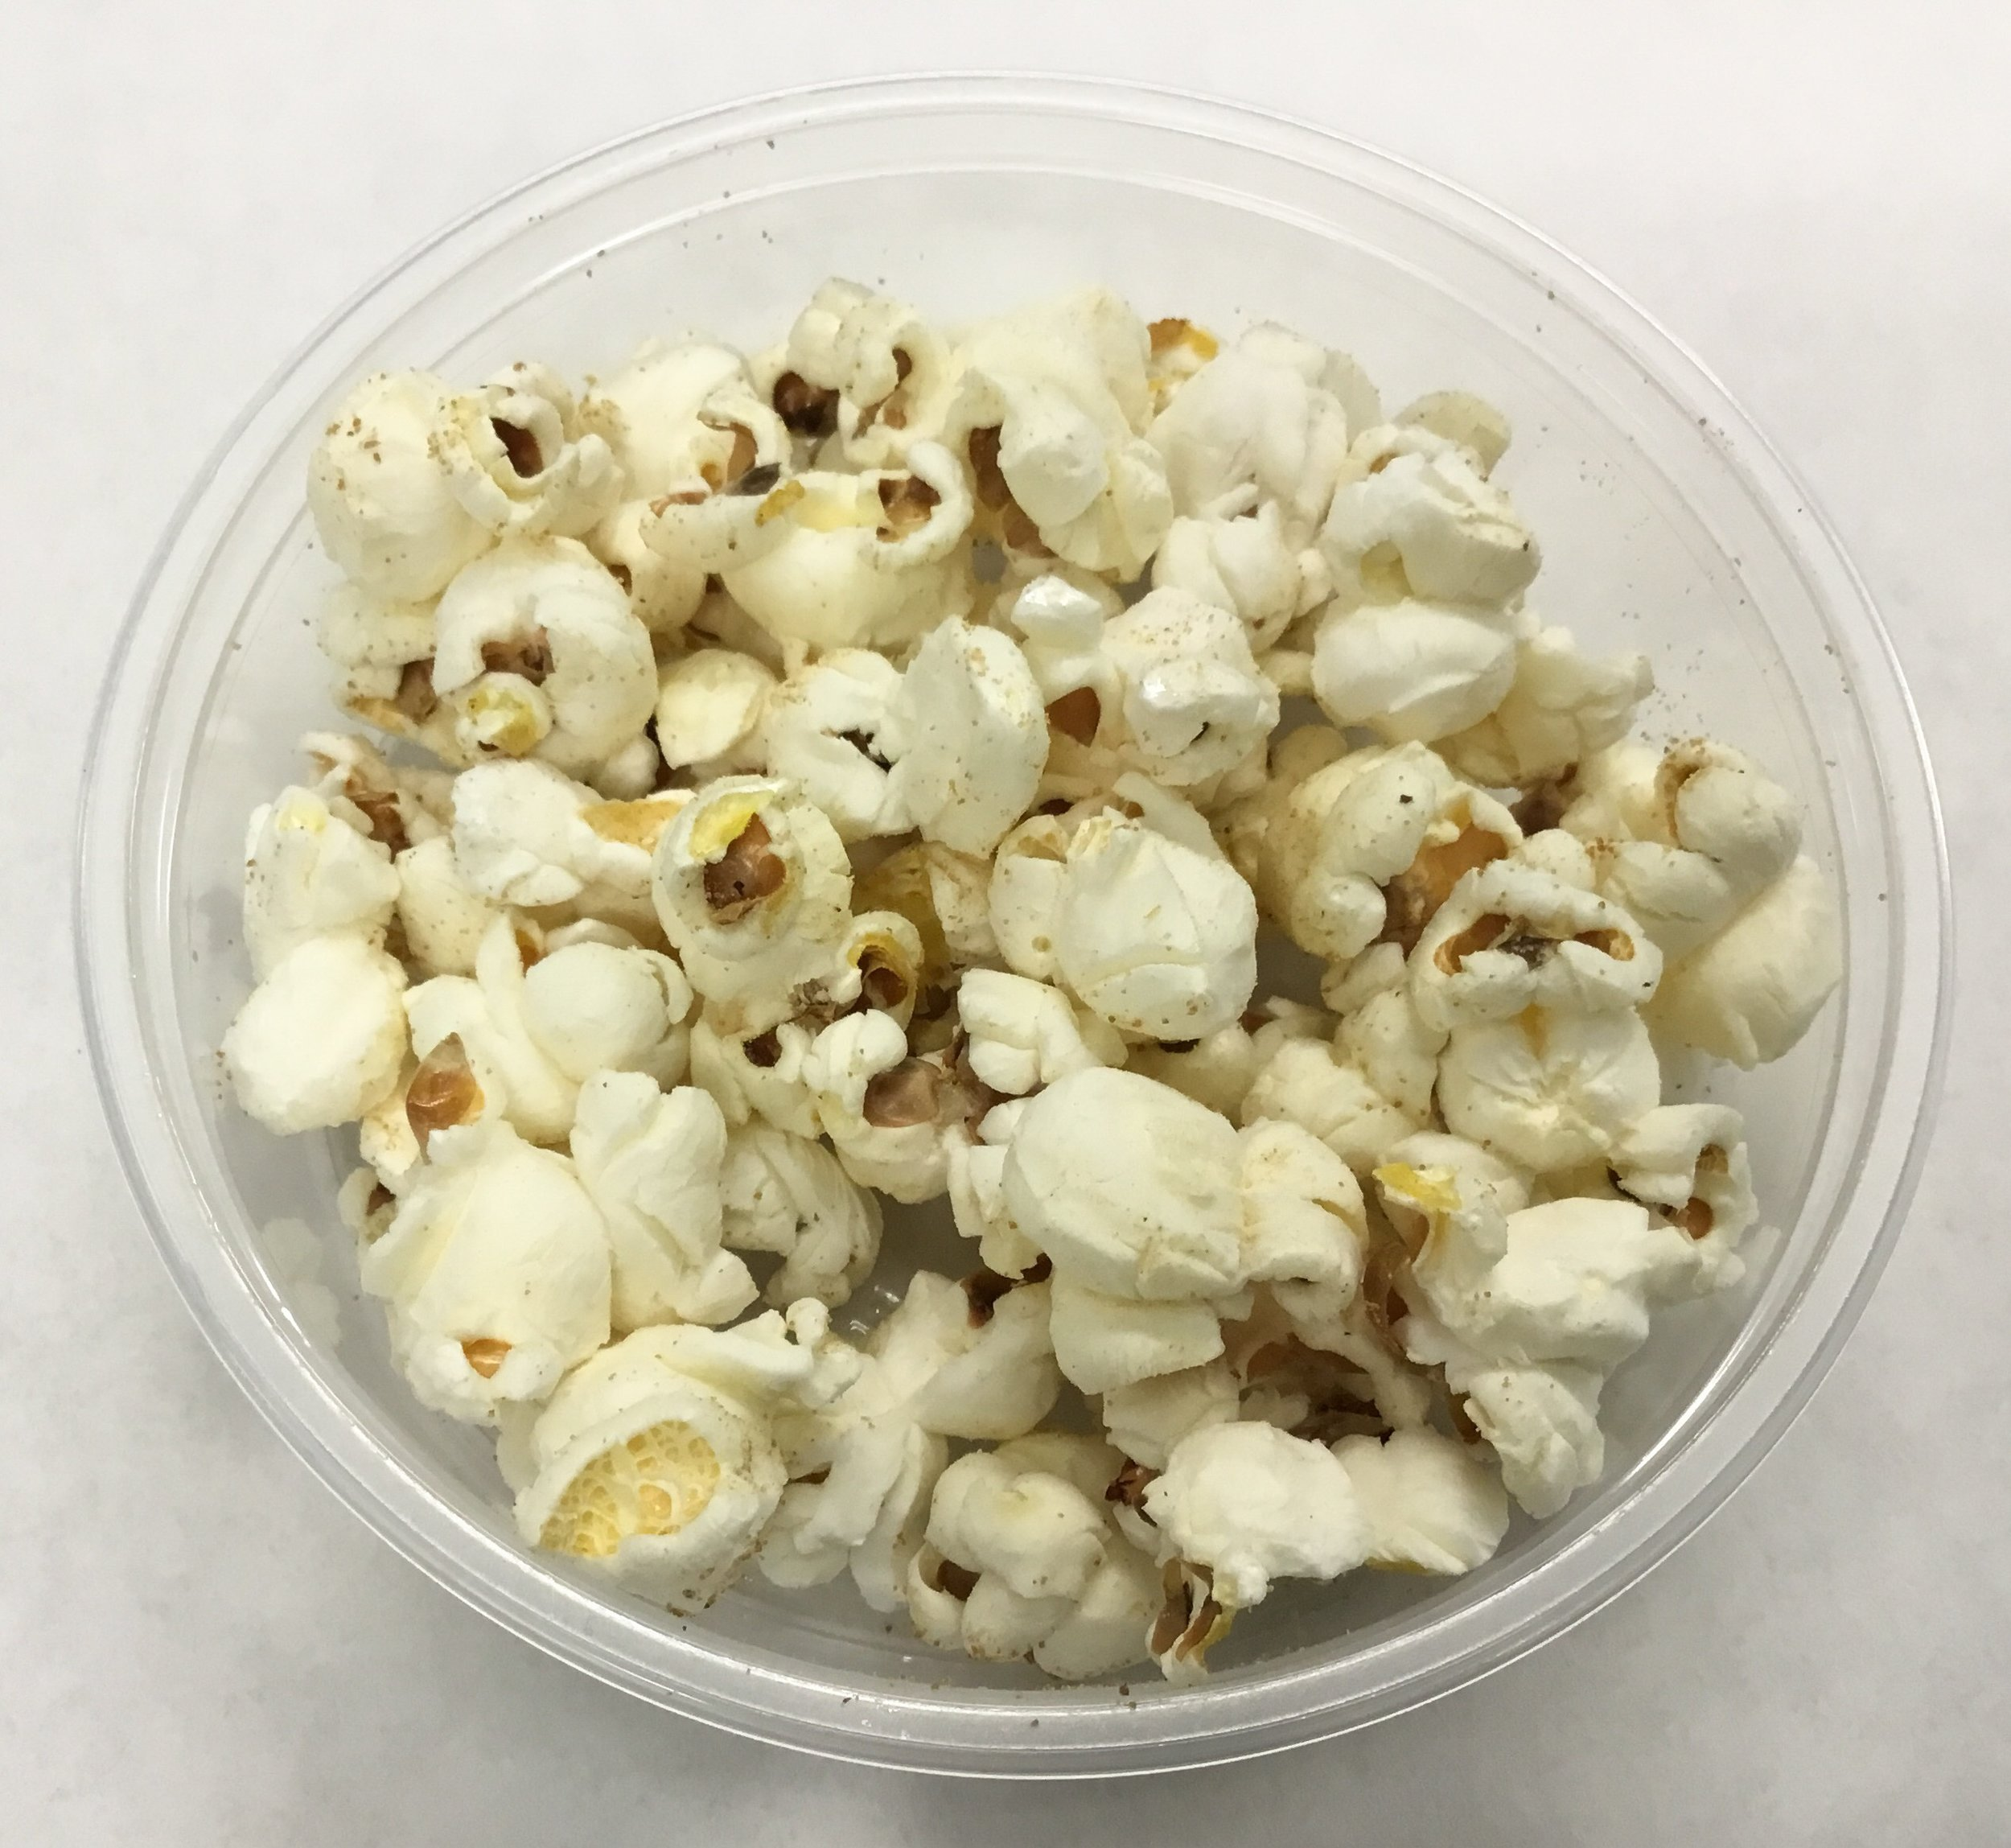 Grapes topping - popcorn with mesquite and coconut sugar.